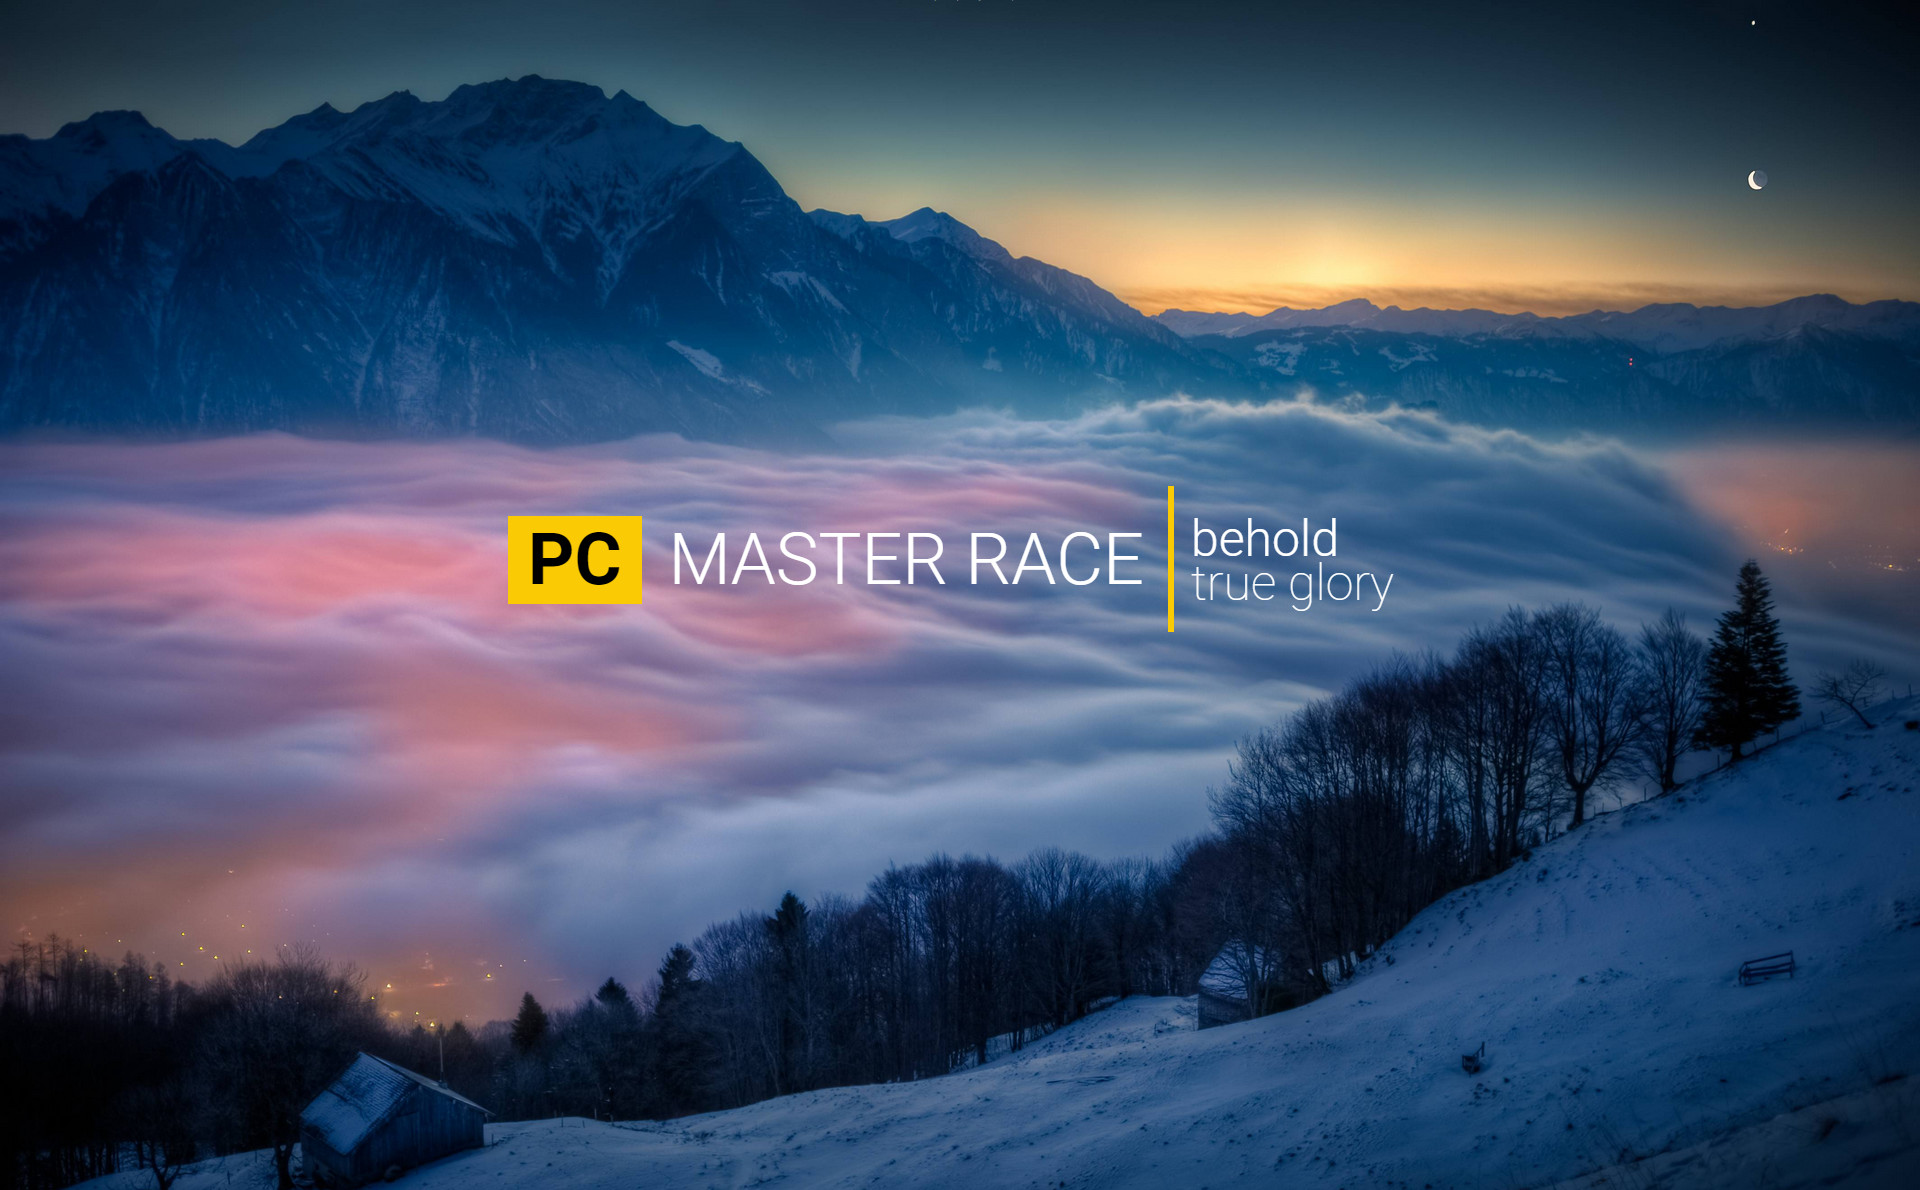 PCMR 1080p Wallpapers